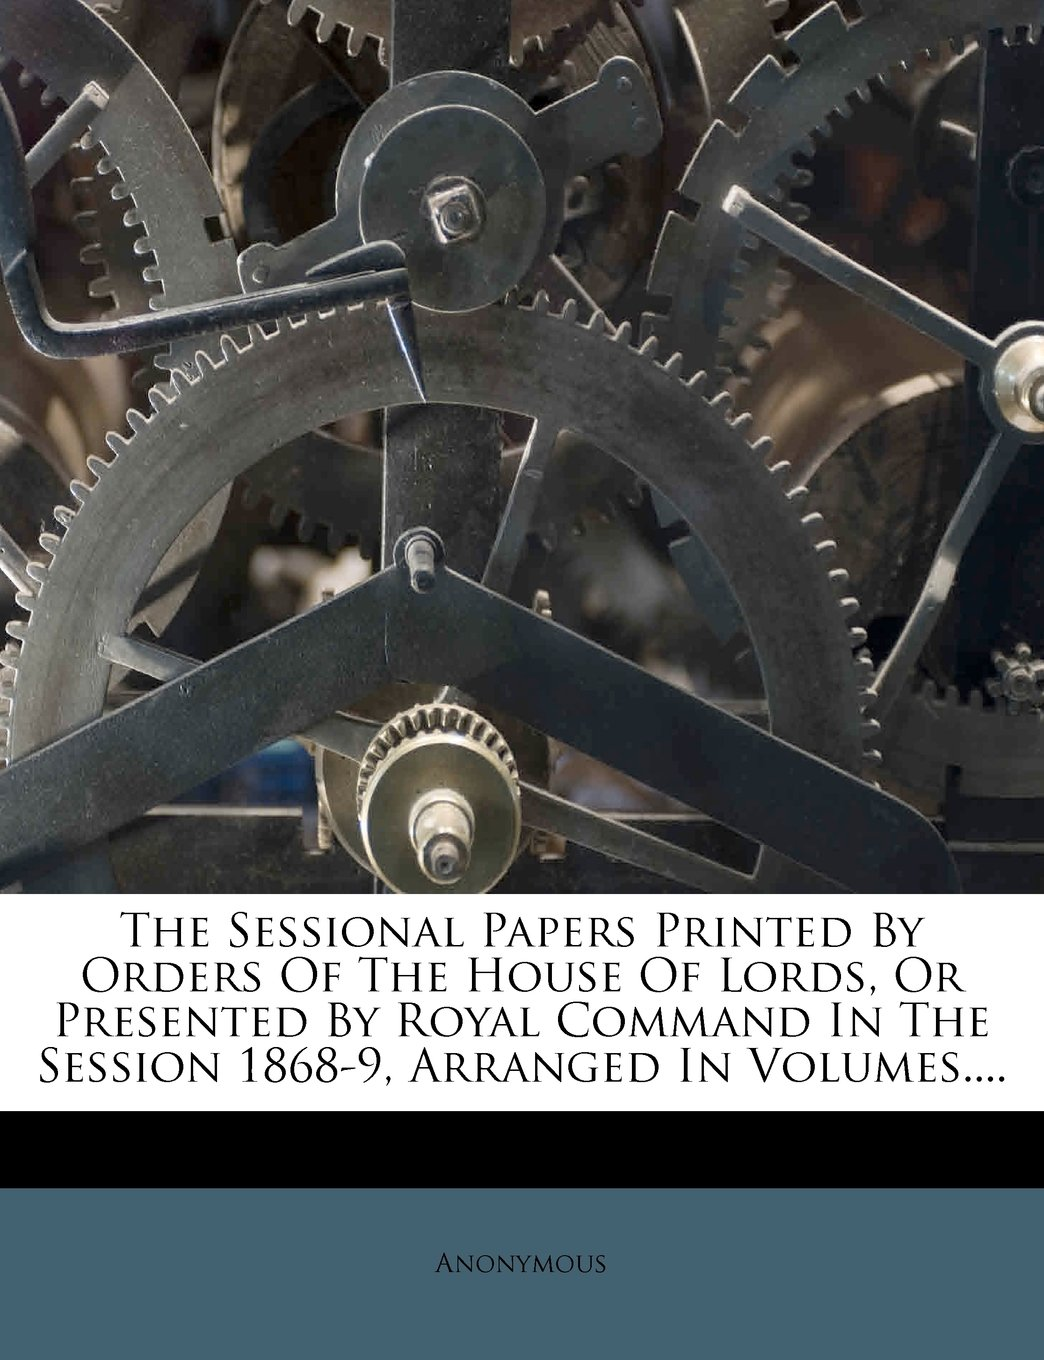 Read Online The Sessional Papers Printed By Orders Of The House Of Lords, Or Presented By Royal Command In The Session 1868-9, Arranged In Volumes.... pdf